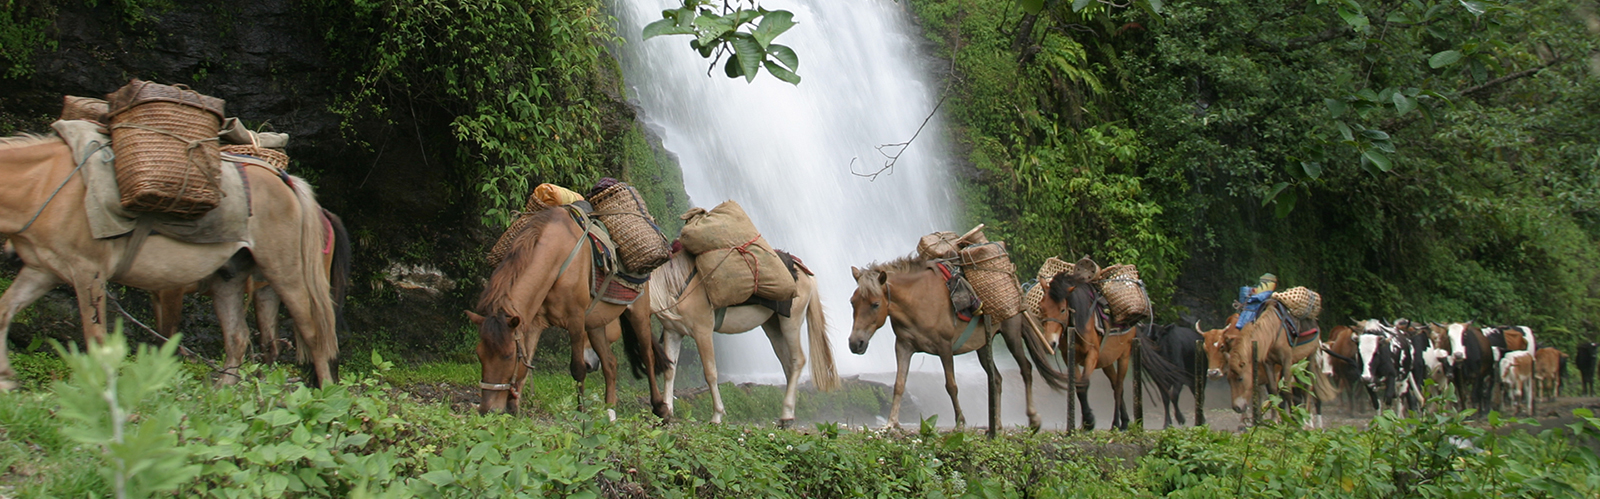 Pack horses transporting trekking equipments and supplies